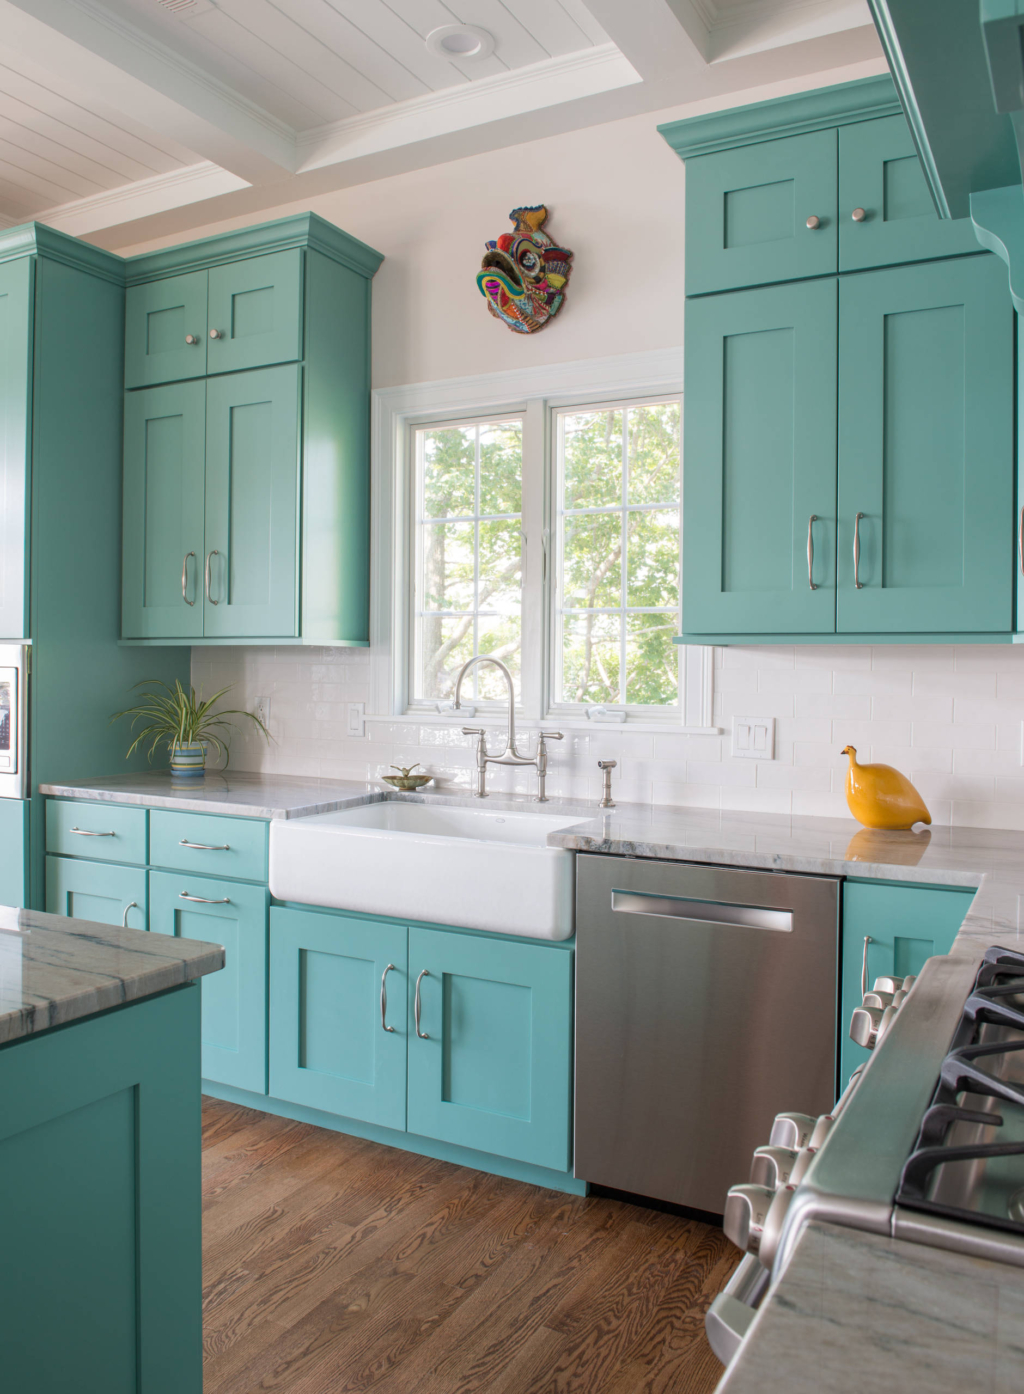 painting kitchen backsplash mikayla valois riverhead building supply house of 1394